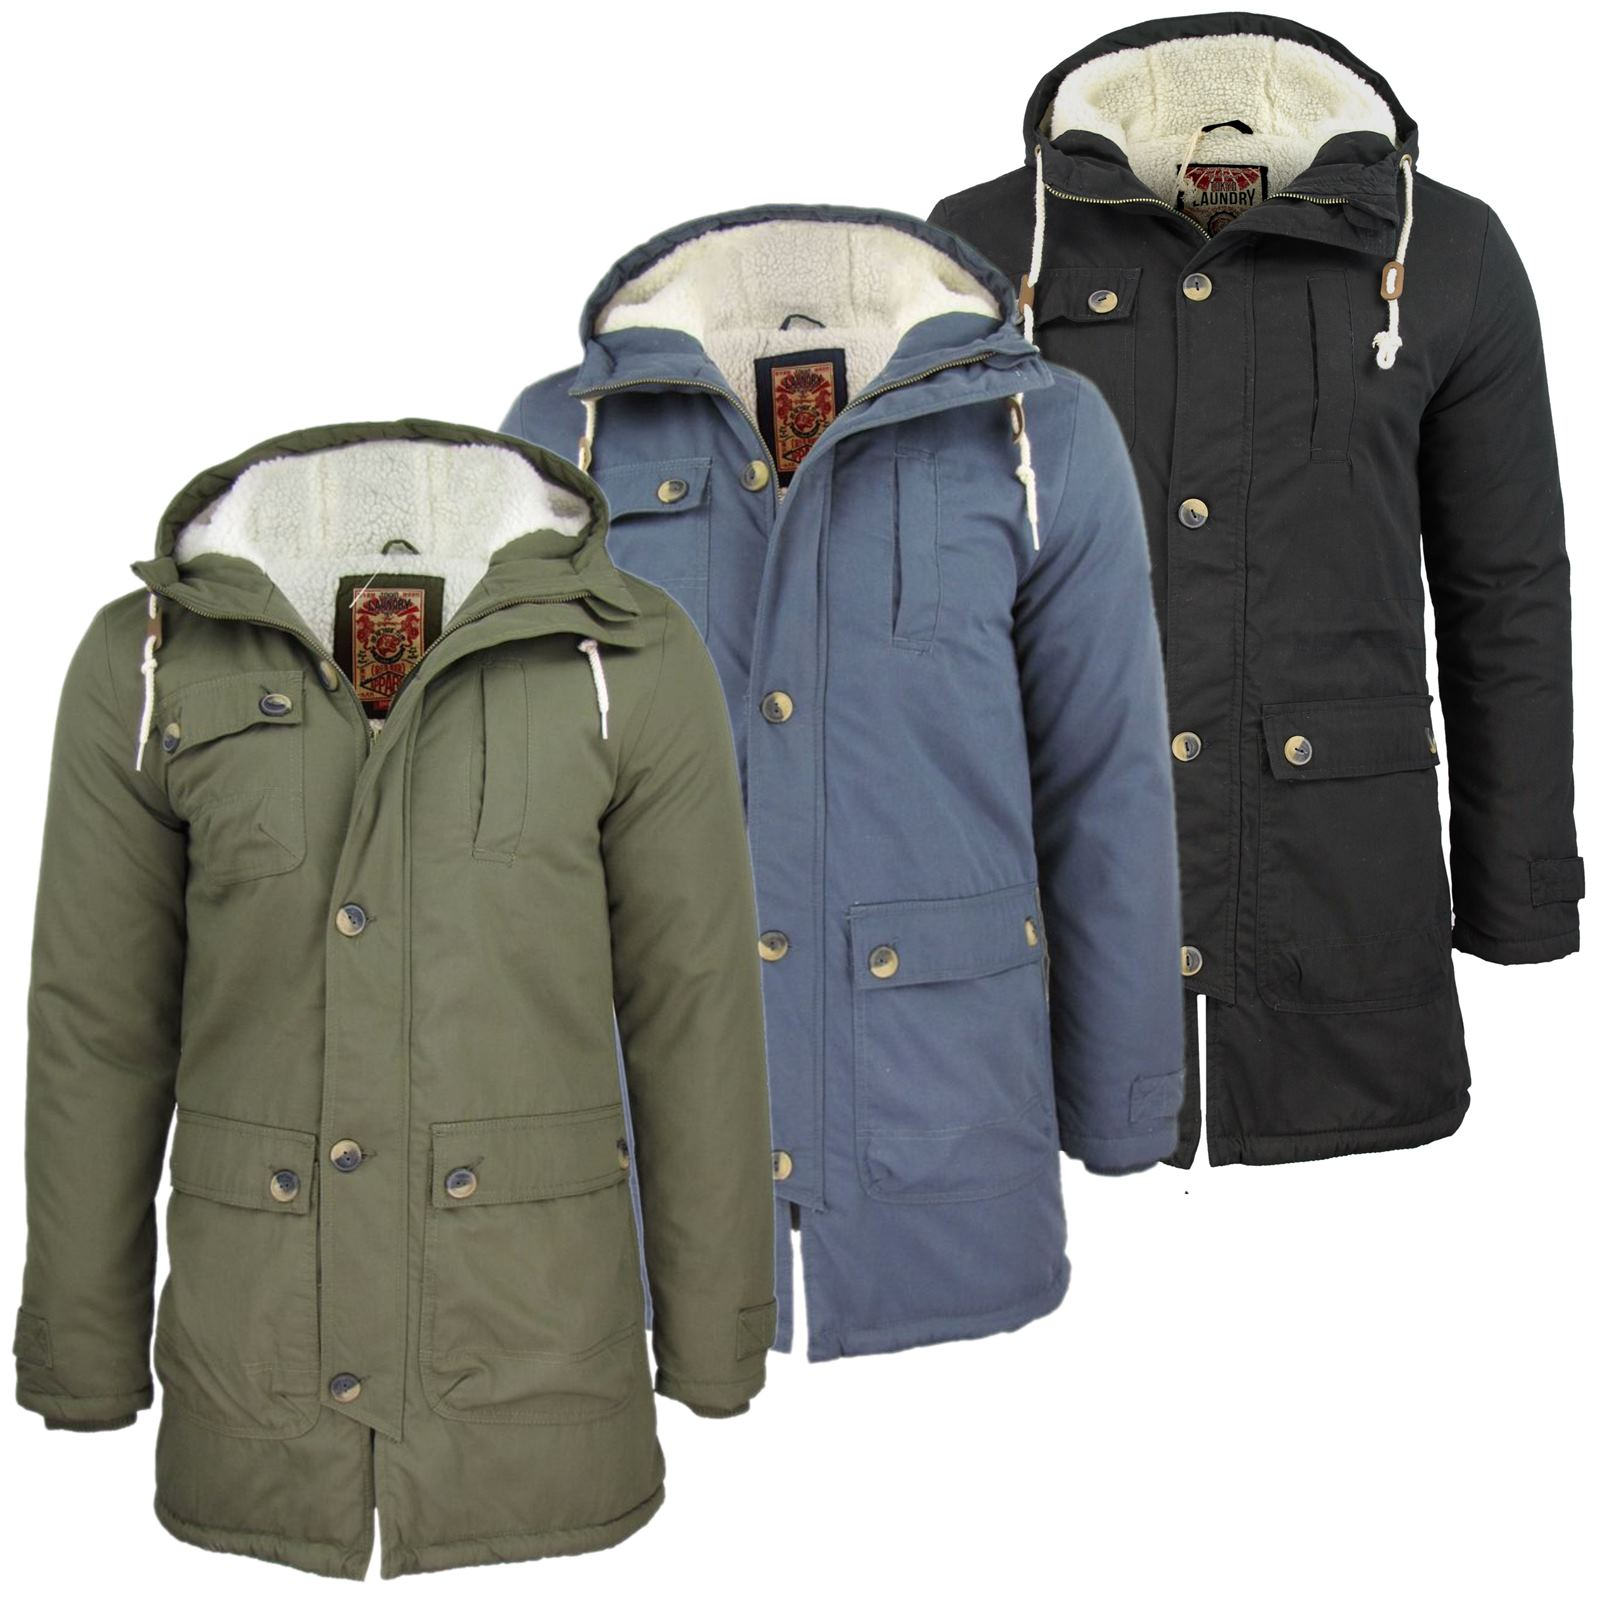 quality design 3db37 6301b Parka Shopping Acquea Shopping Parka Giacca Acquea Giacca ...